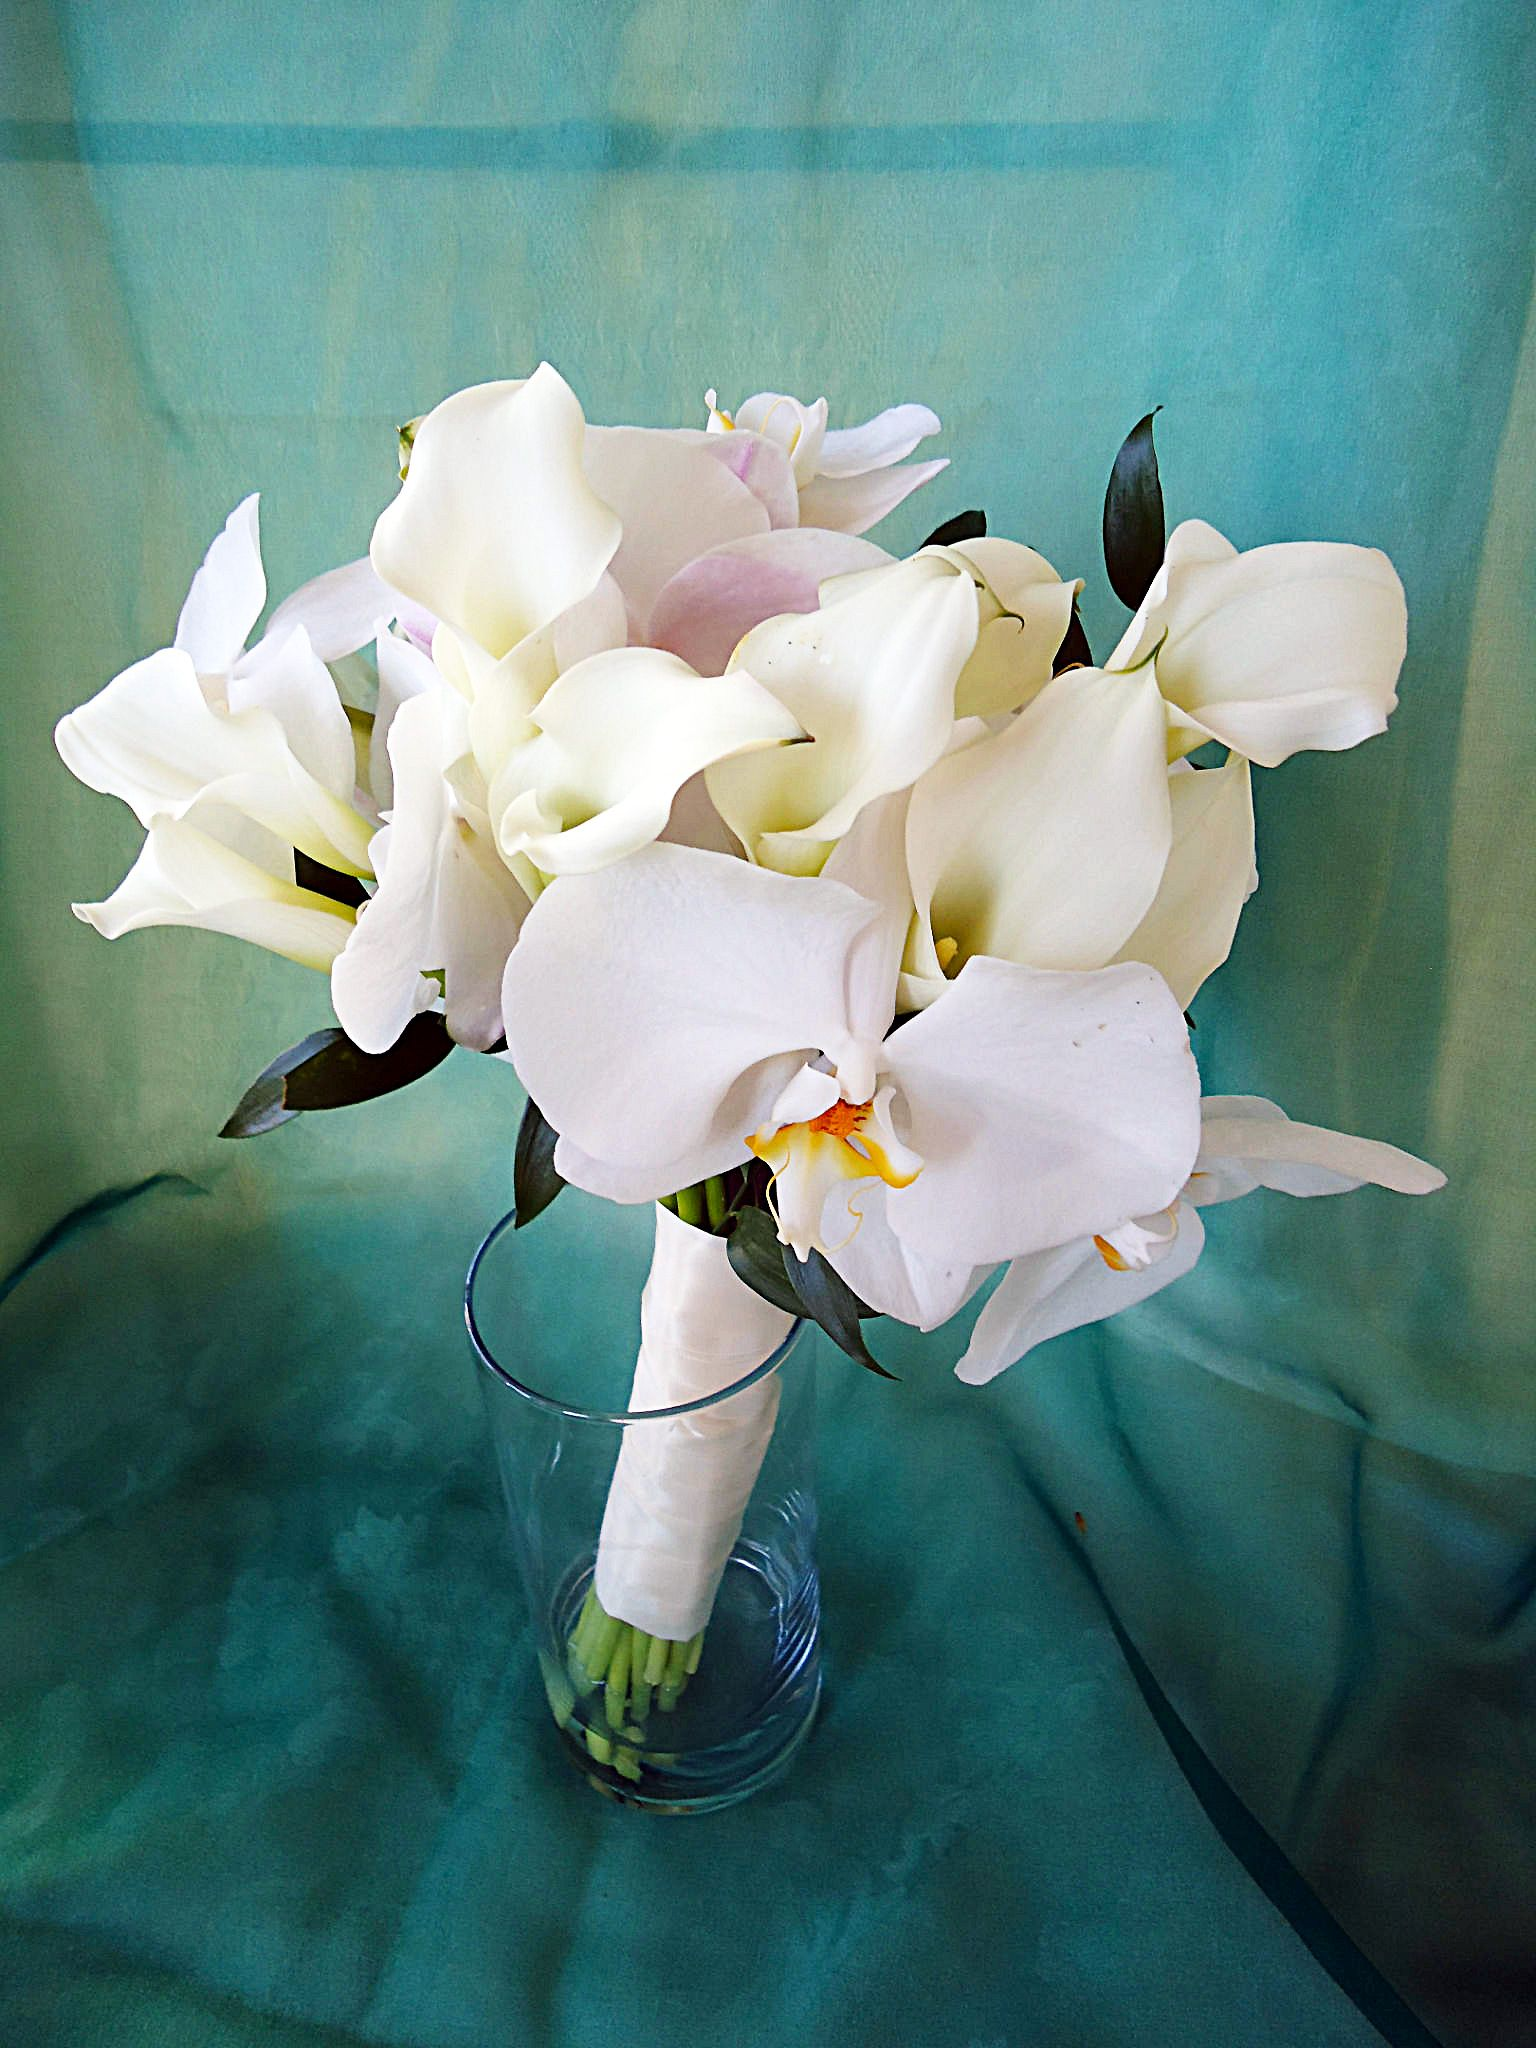 Phalaenopsis white orchids and calla lilies four seasons flowers phalaenopsis white orchids and calla lilies four seasons flowers izmirmasajfo